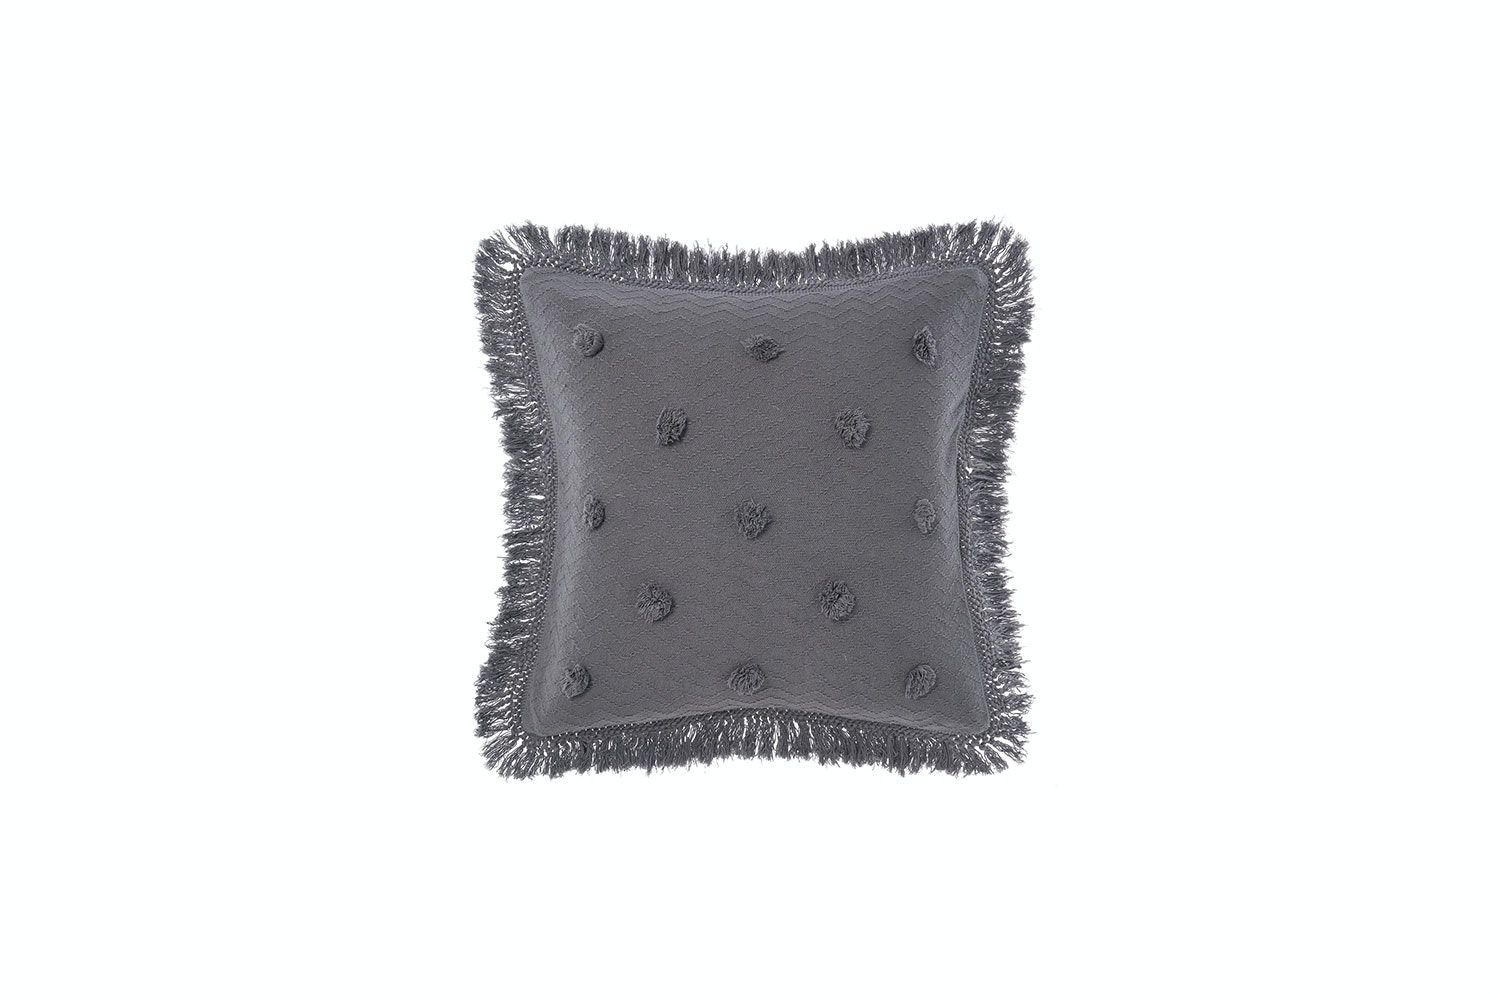 Adalyn Charcoal European Pillowcase by Savona